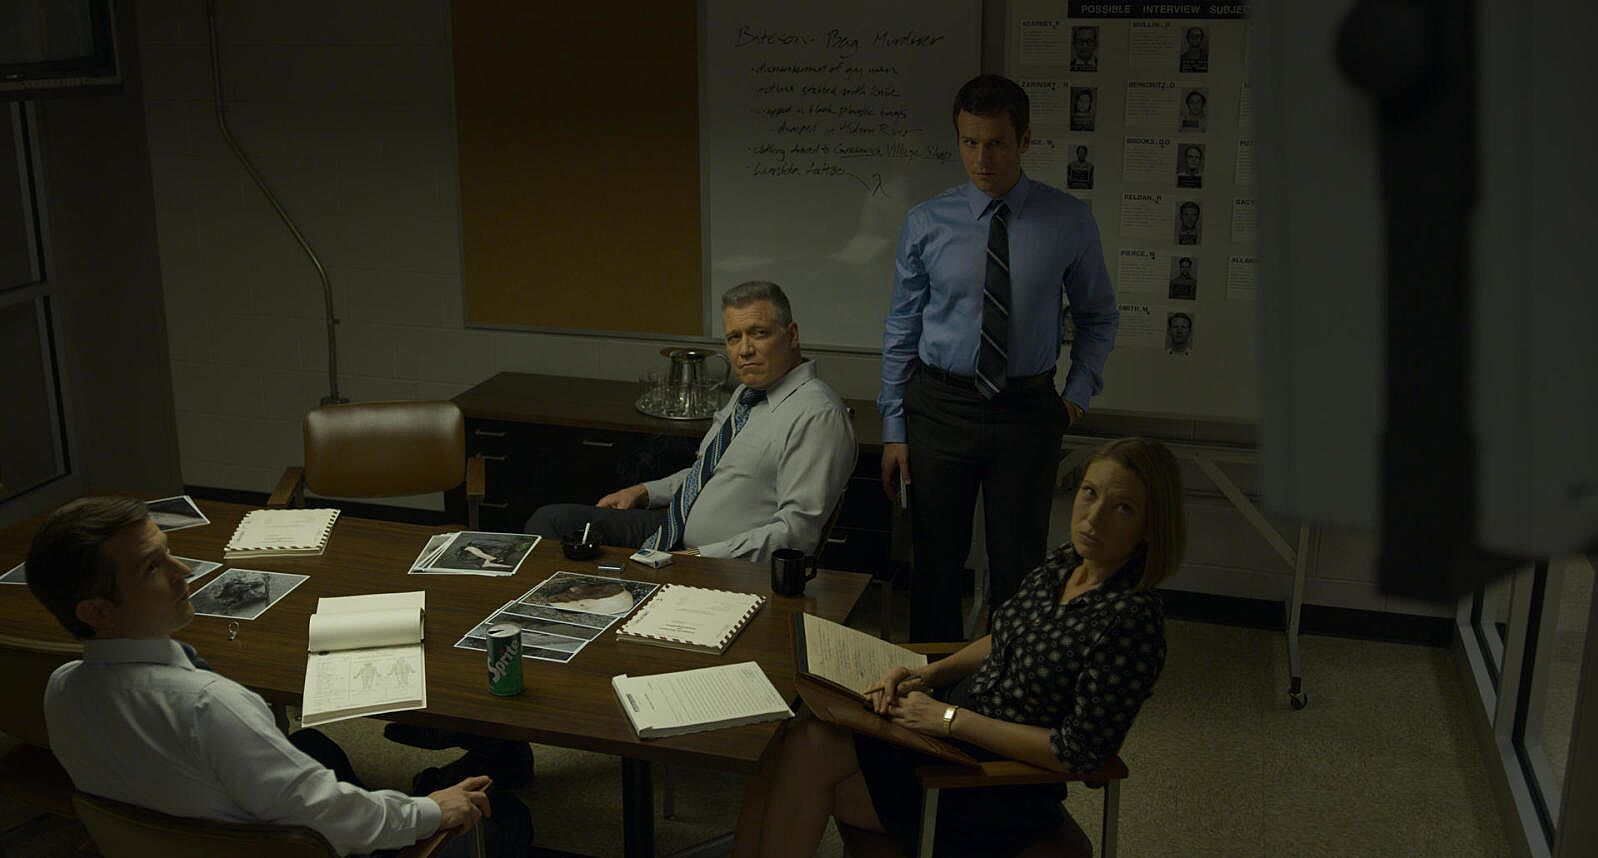 Mindhunter Season 3: Who will be the featured killers?